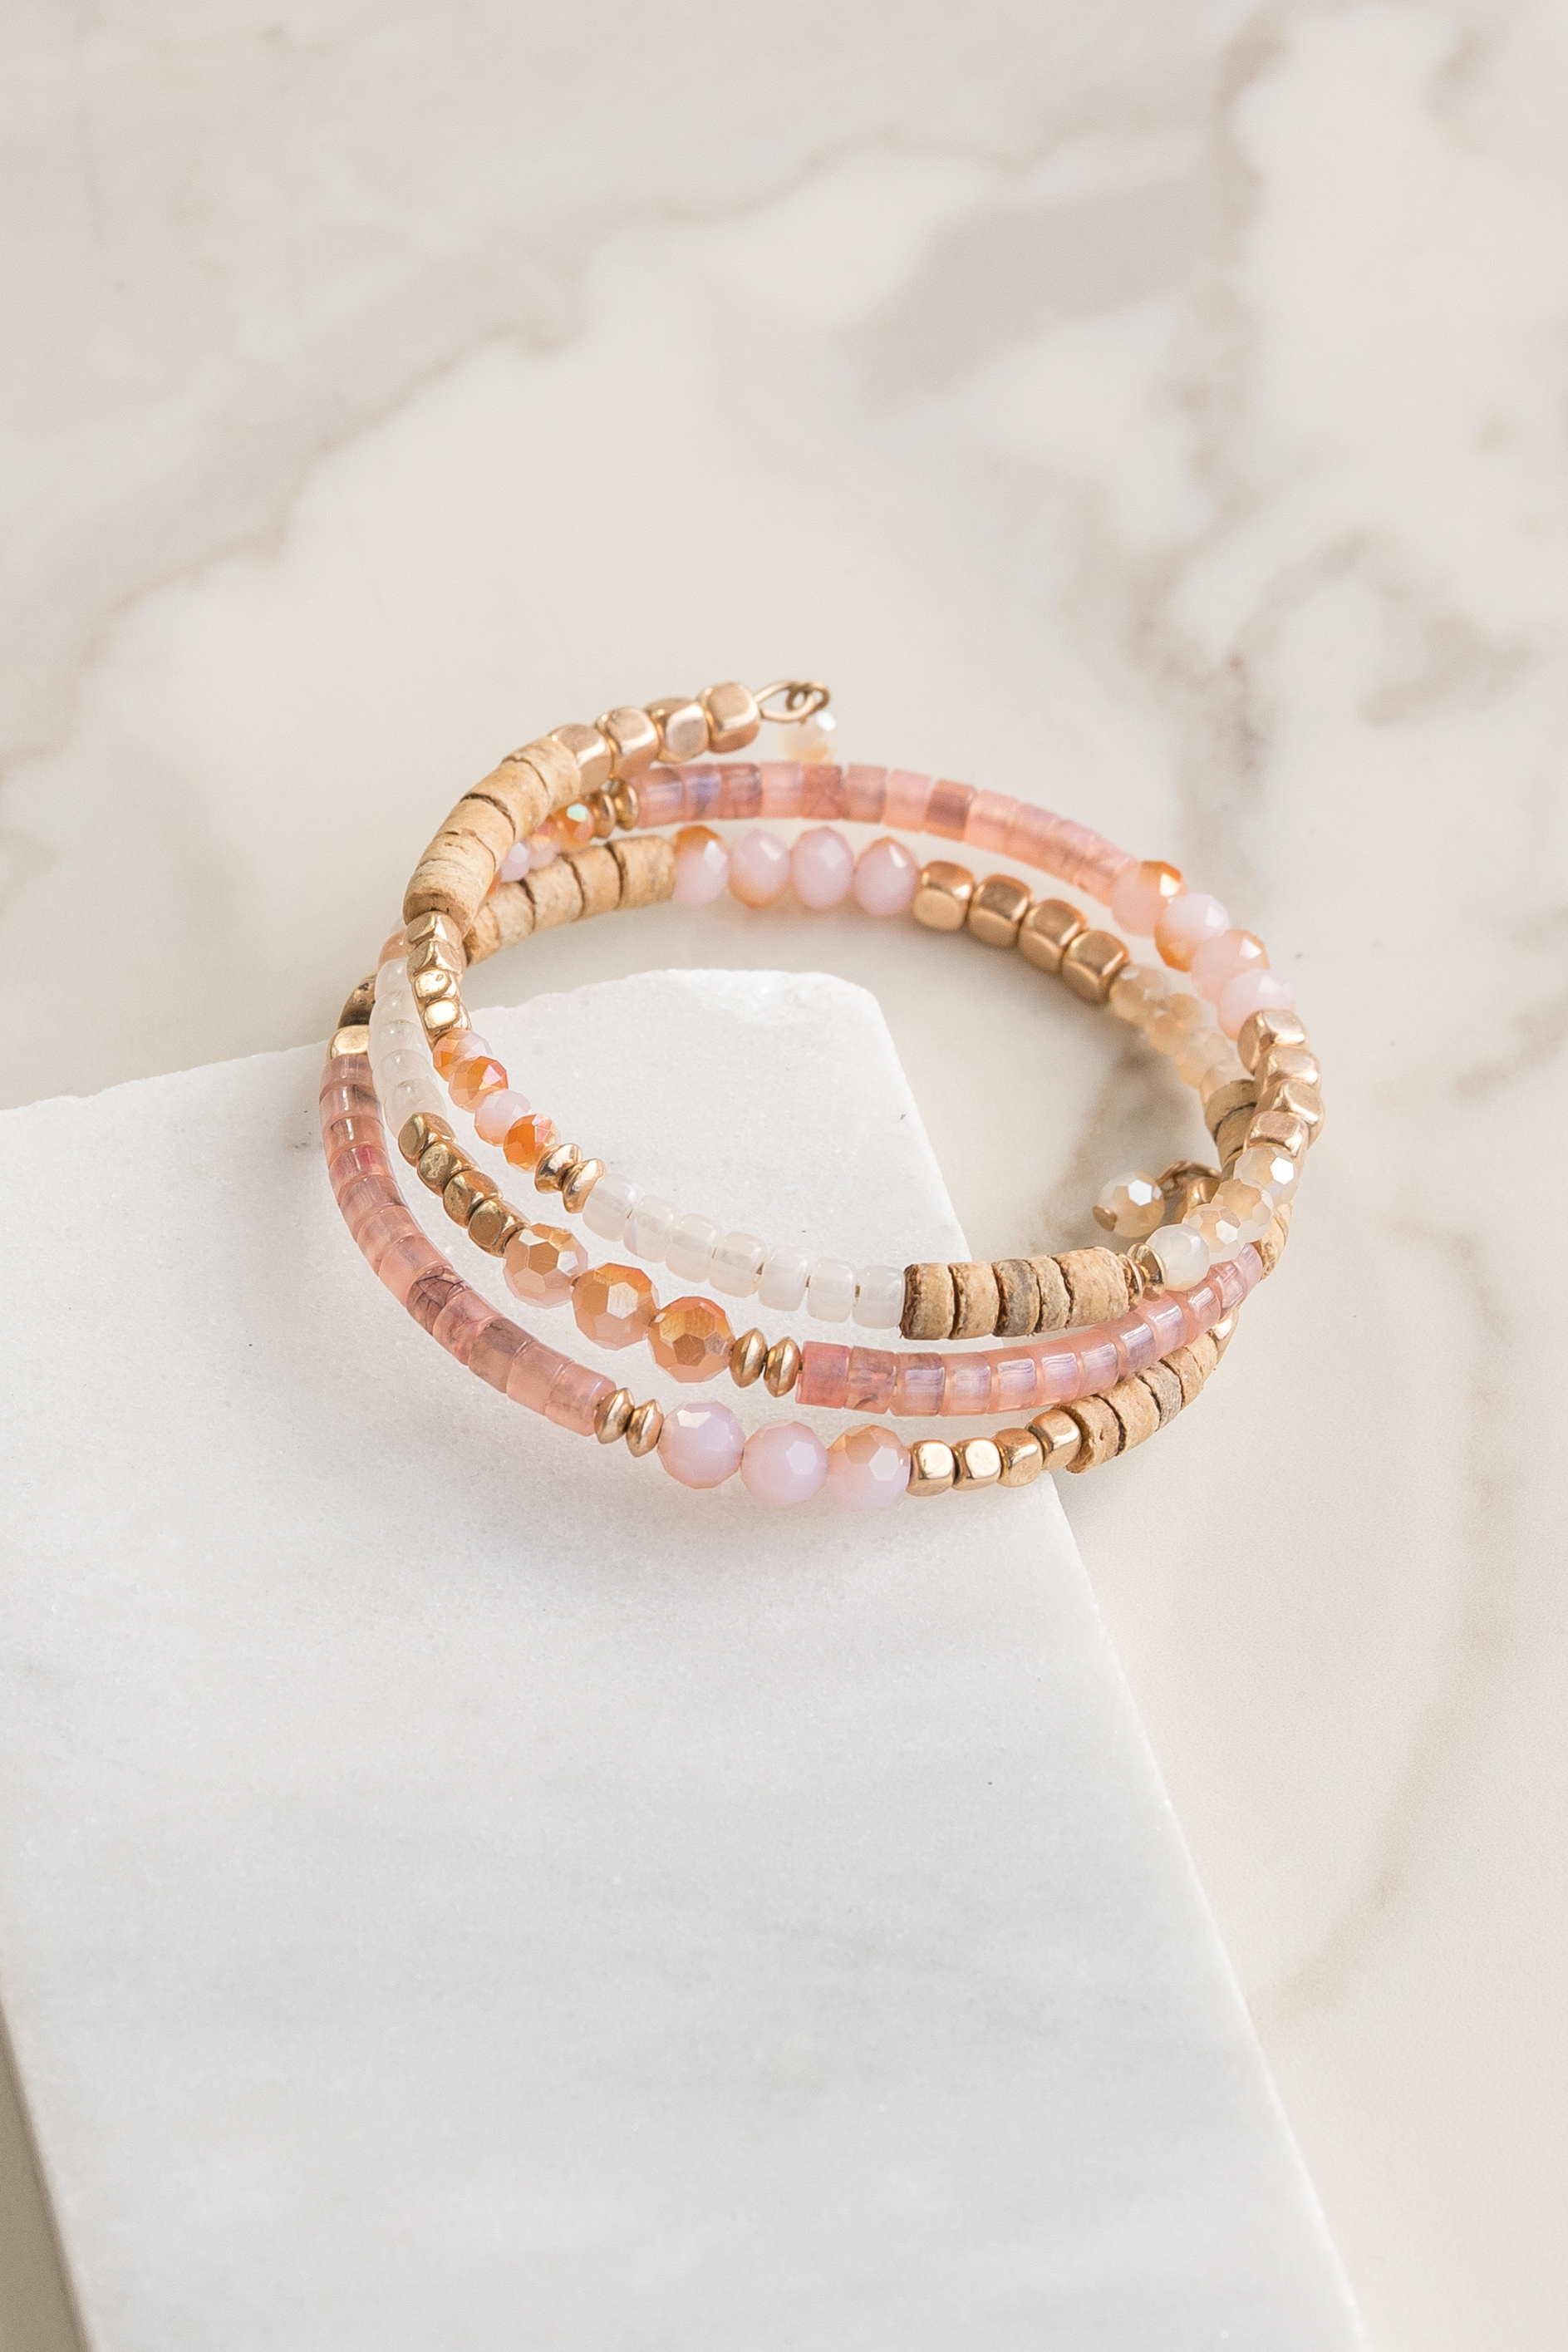 Blush Pink and Antique Gold Beaded Wrap Bracelet